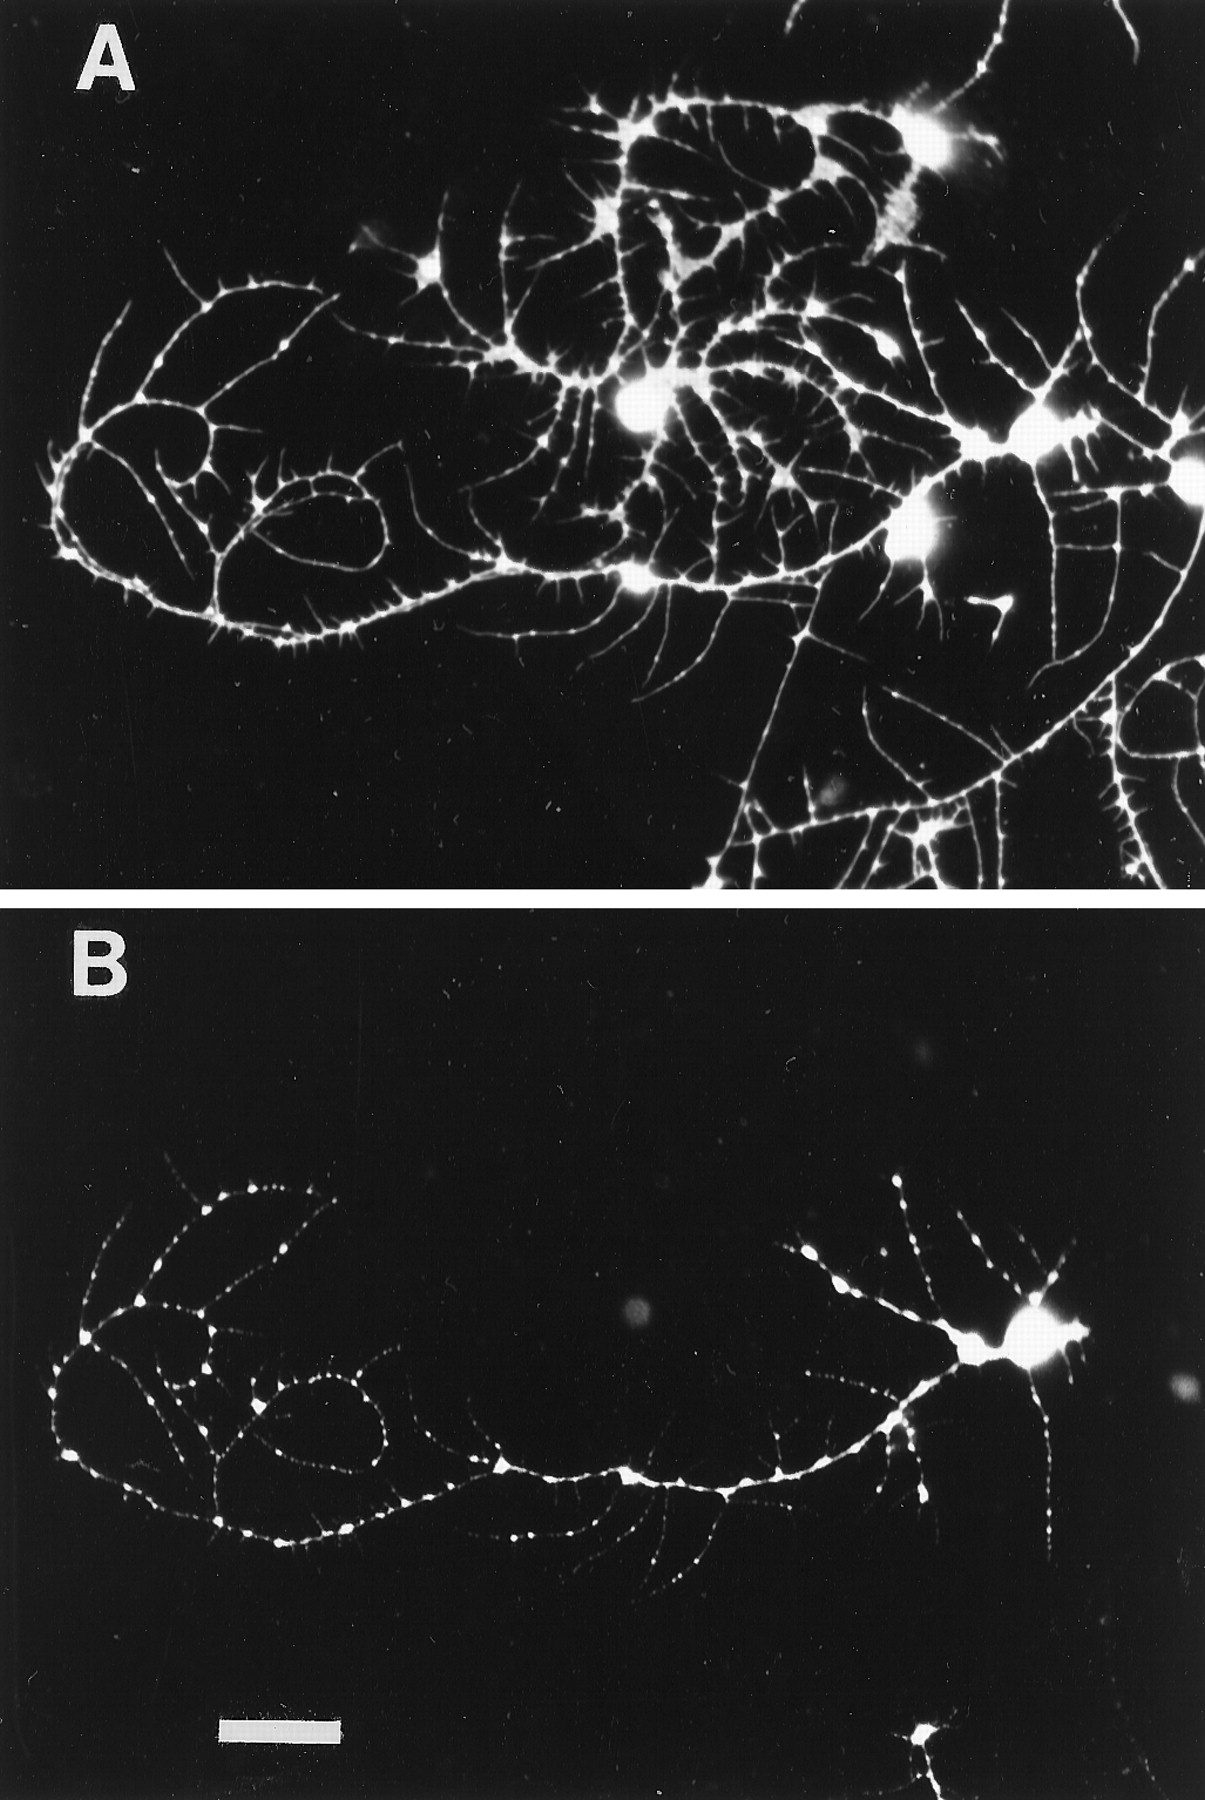 The Steroid Hormone 20 Hydroxyecdysone Enhances Neurite Growth Monochrome Topology Of A Printed Circuit Board Stock Photos Image Download Figure